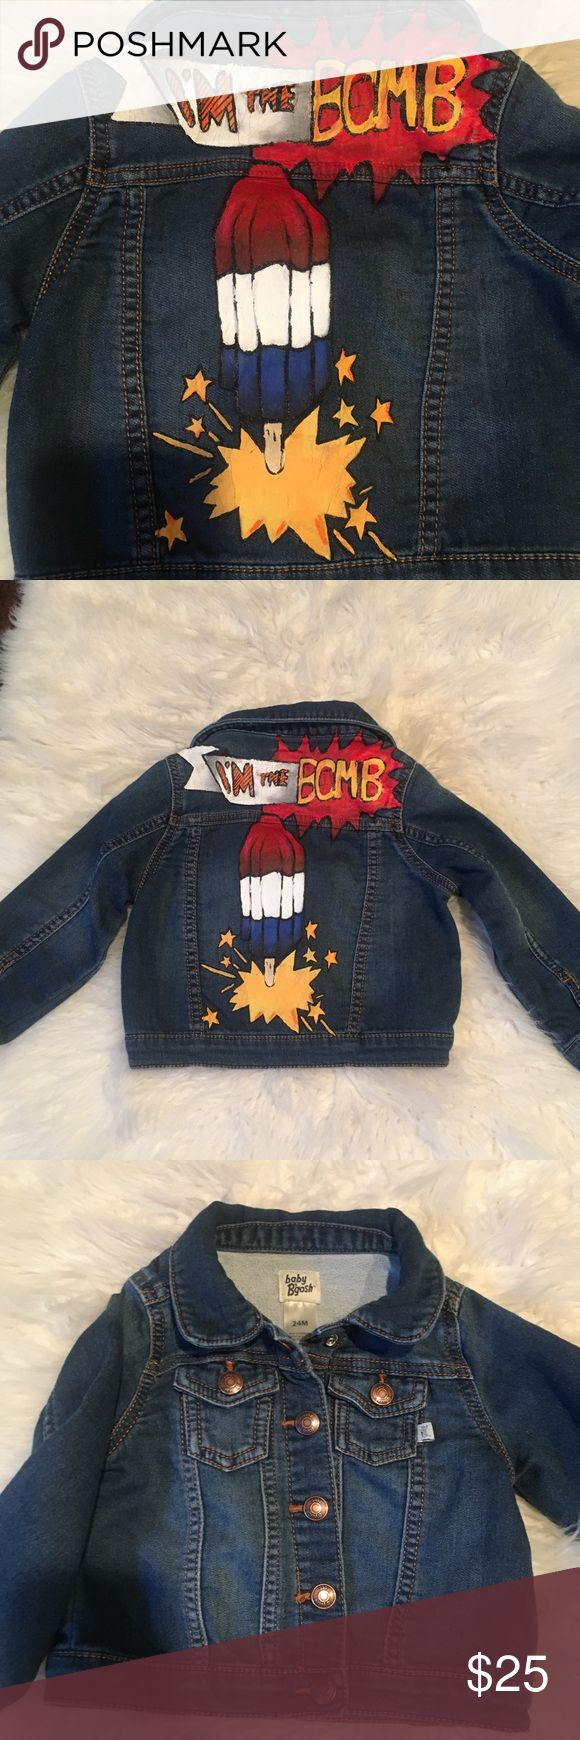 Baby denim jacket Hand painted baby denim jacket size 24 months gently used very good condition Jackets & Coats Jean Jackets